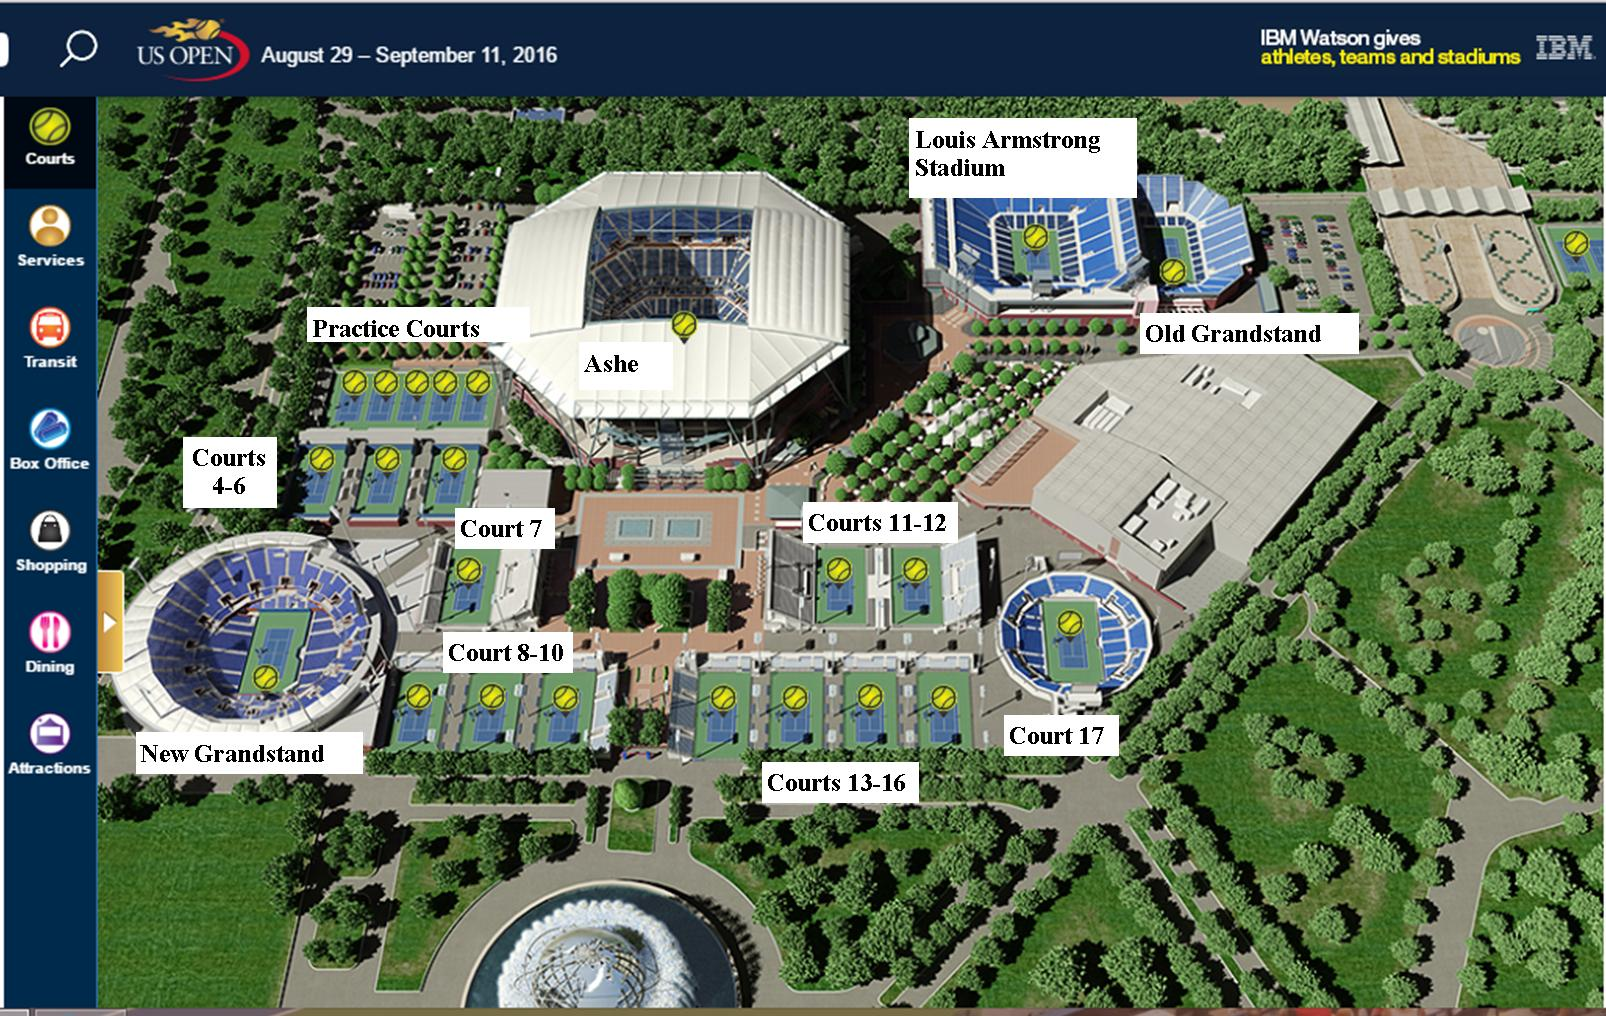 Us Open Tennis Courts Map Guide and Tips to Visiting the US Open | Moo's Tennis Blog